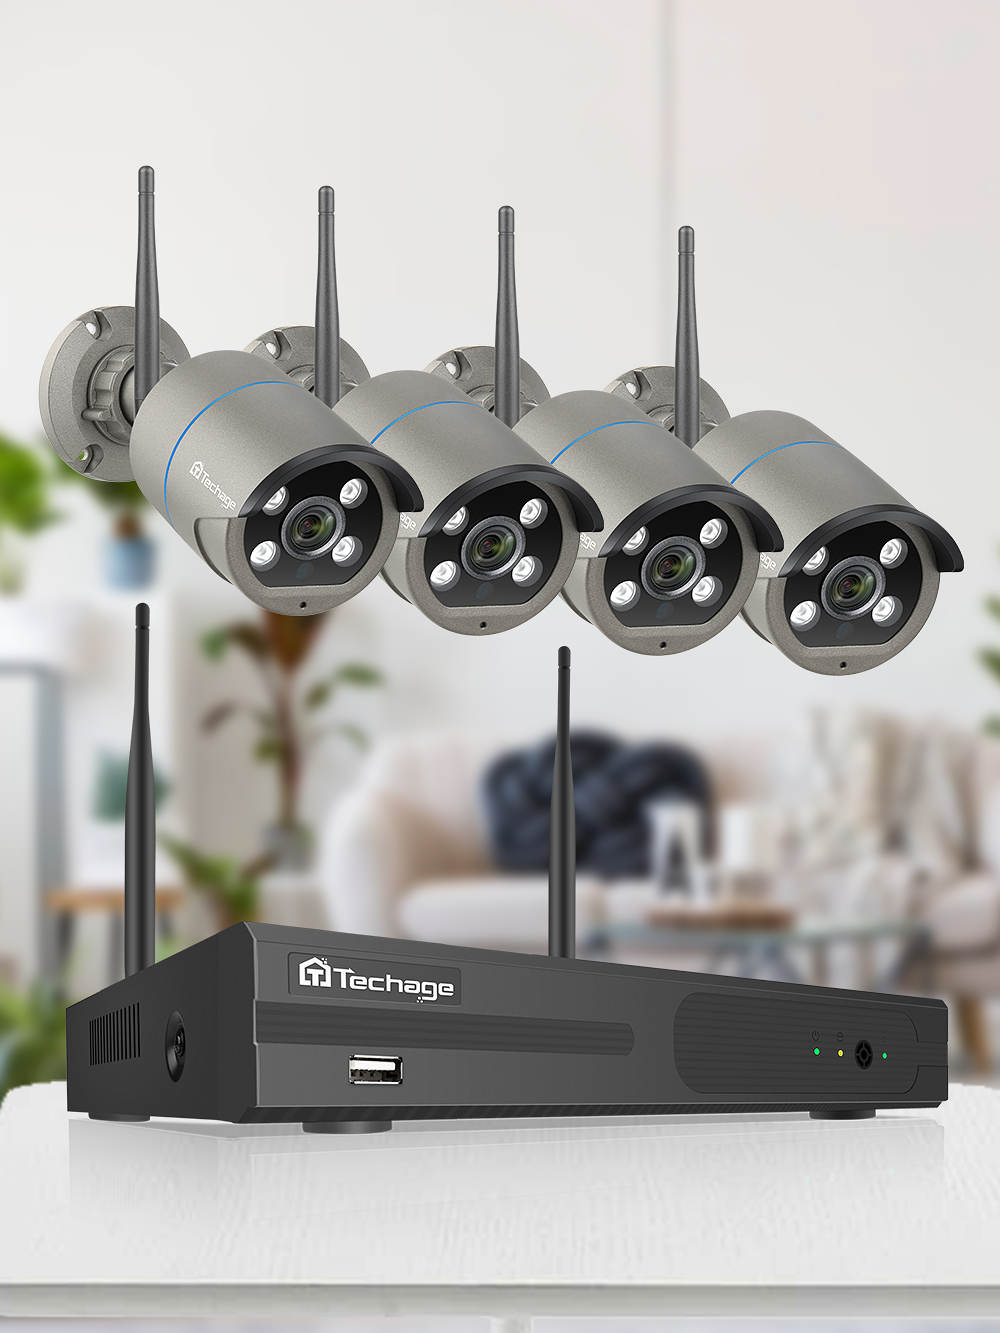 Techage Nvr-Kit Surveillance-Set Ip-Camera Cctv-Security-System Outdoor-Wifi Wireless